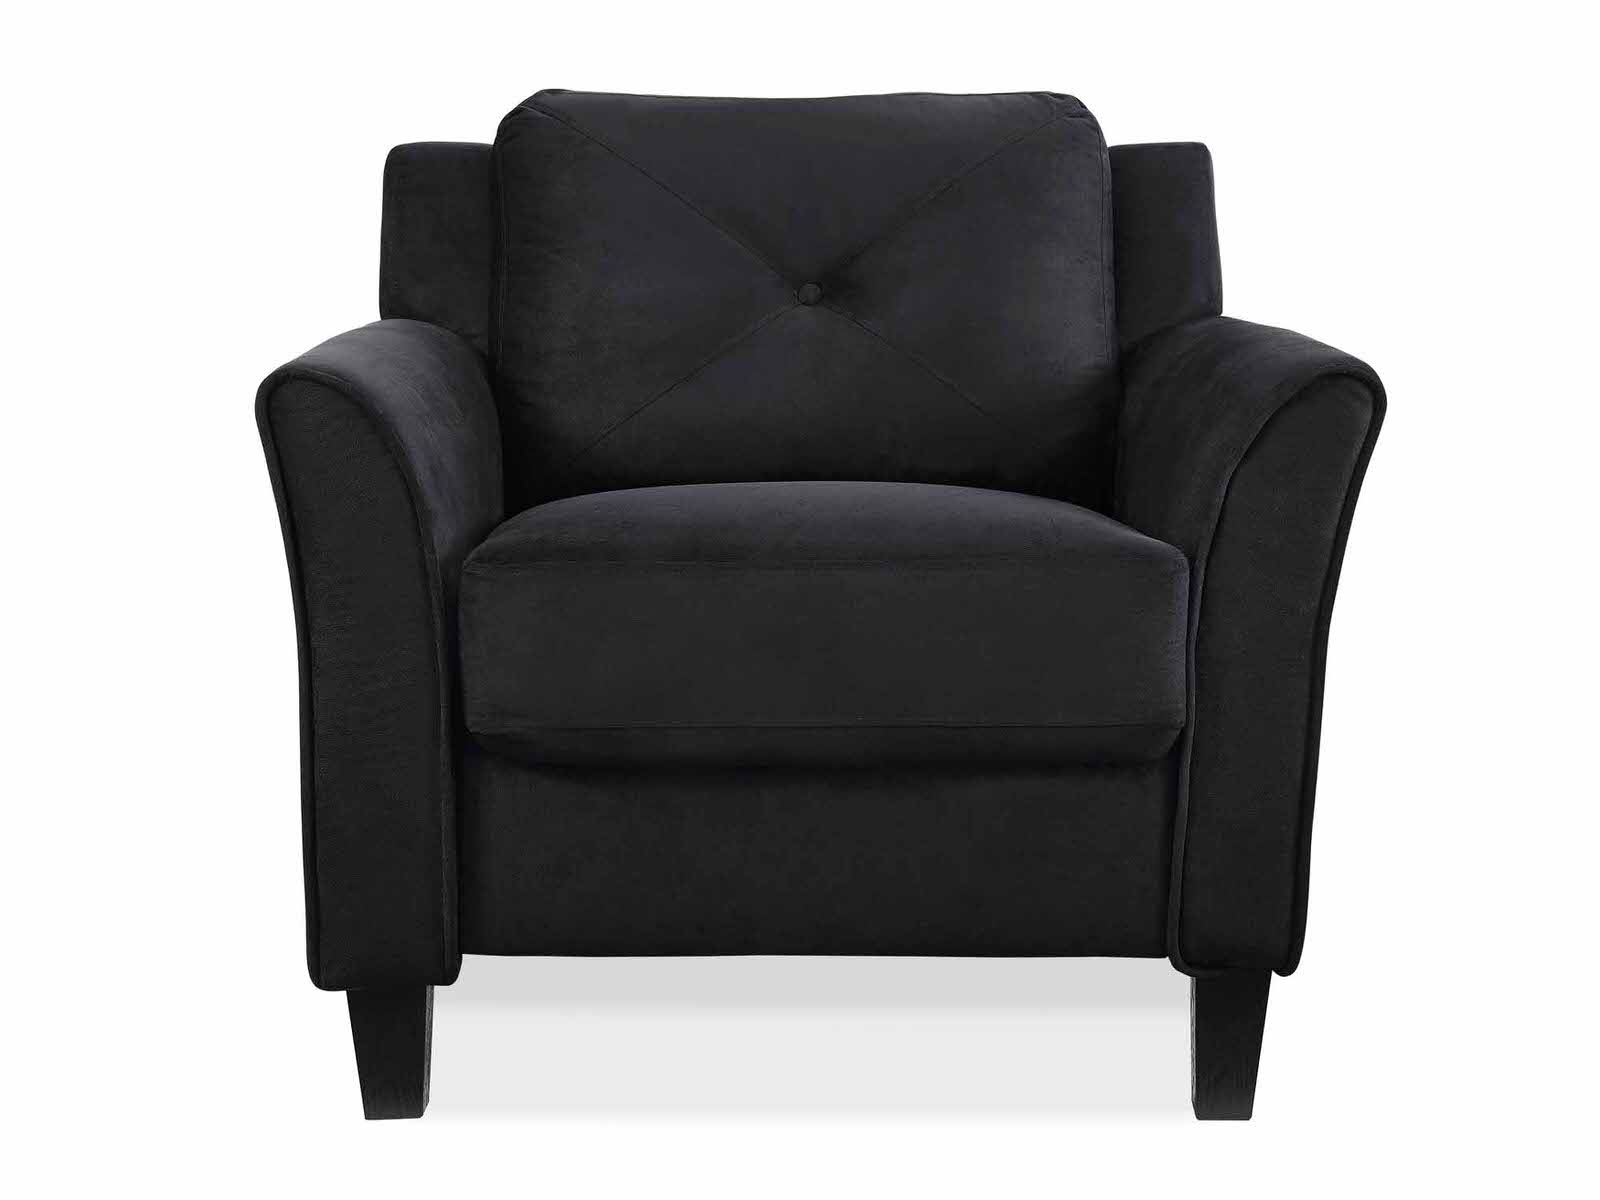 Hartford Black Chair with Curved Arm by Lifestyle